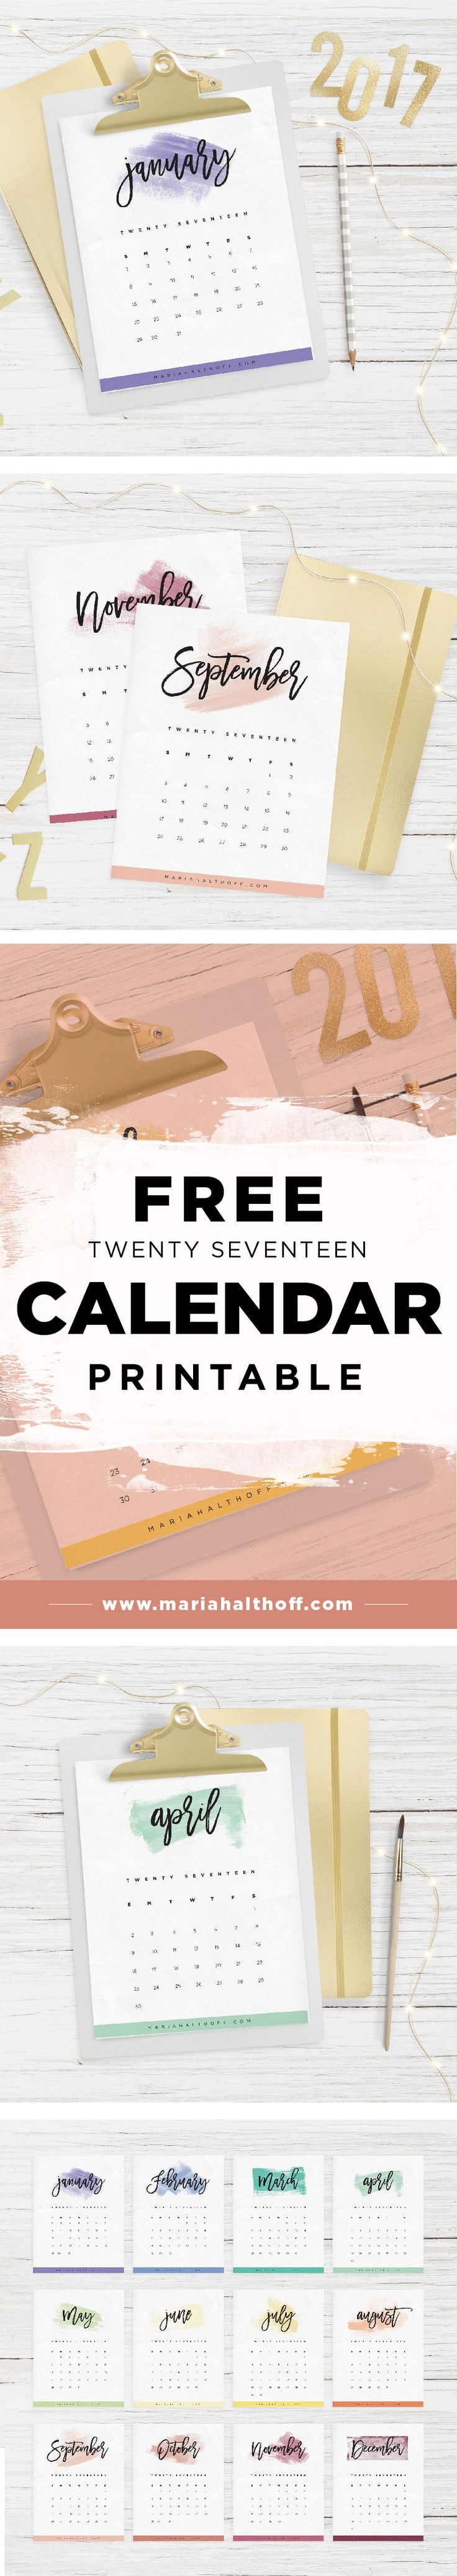 Start planning 2017 with this FREE calendar printable! Stay organized while decorating your desk.